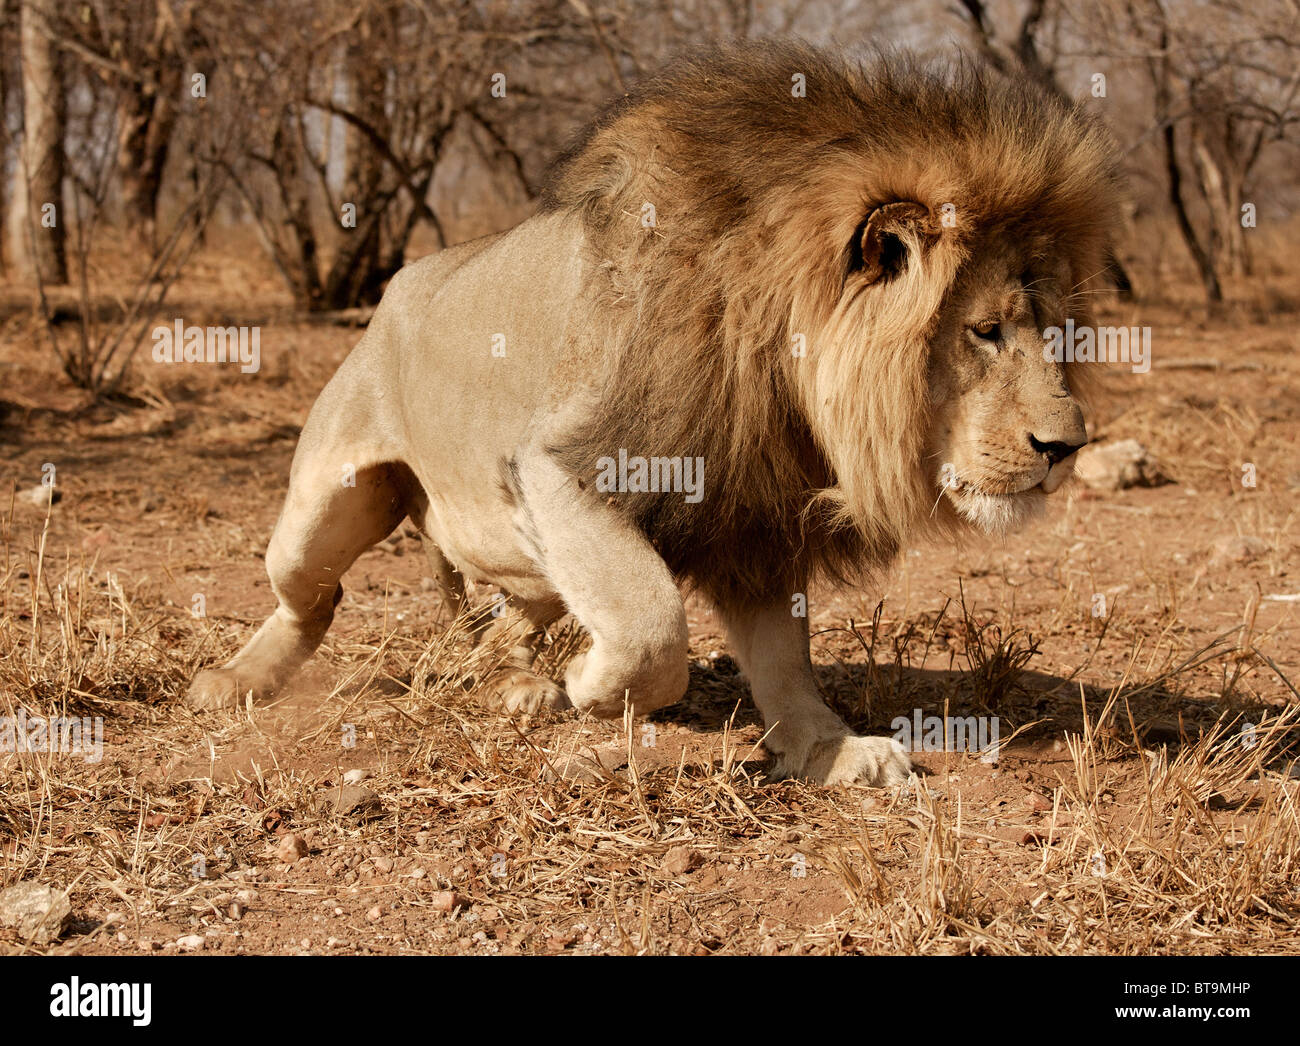 Lion approaching swiftly to food. Kruger National Park, South Africa. - Stock Image